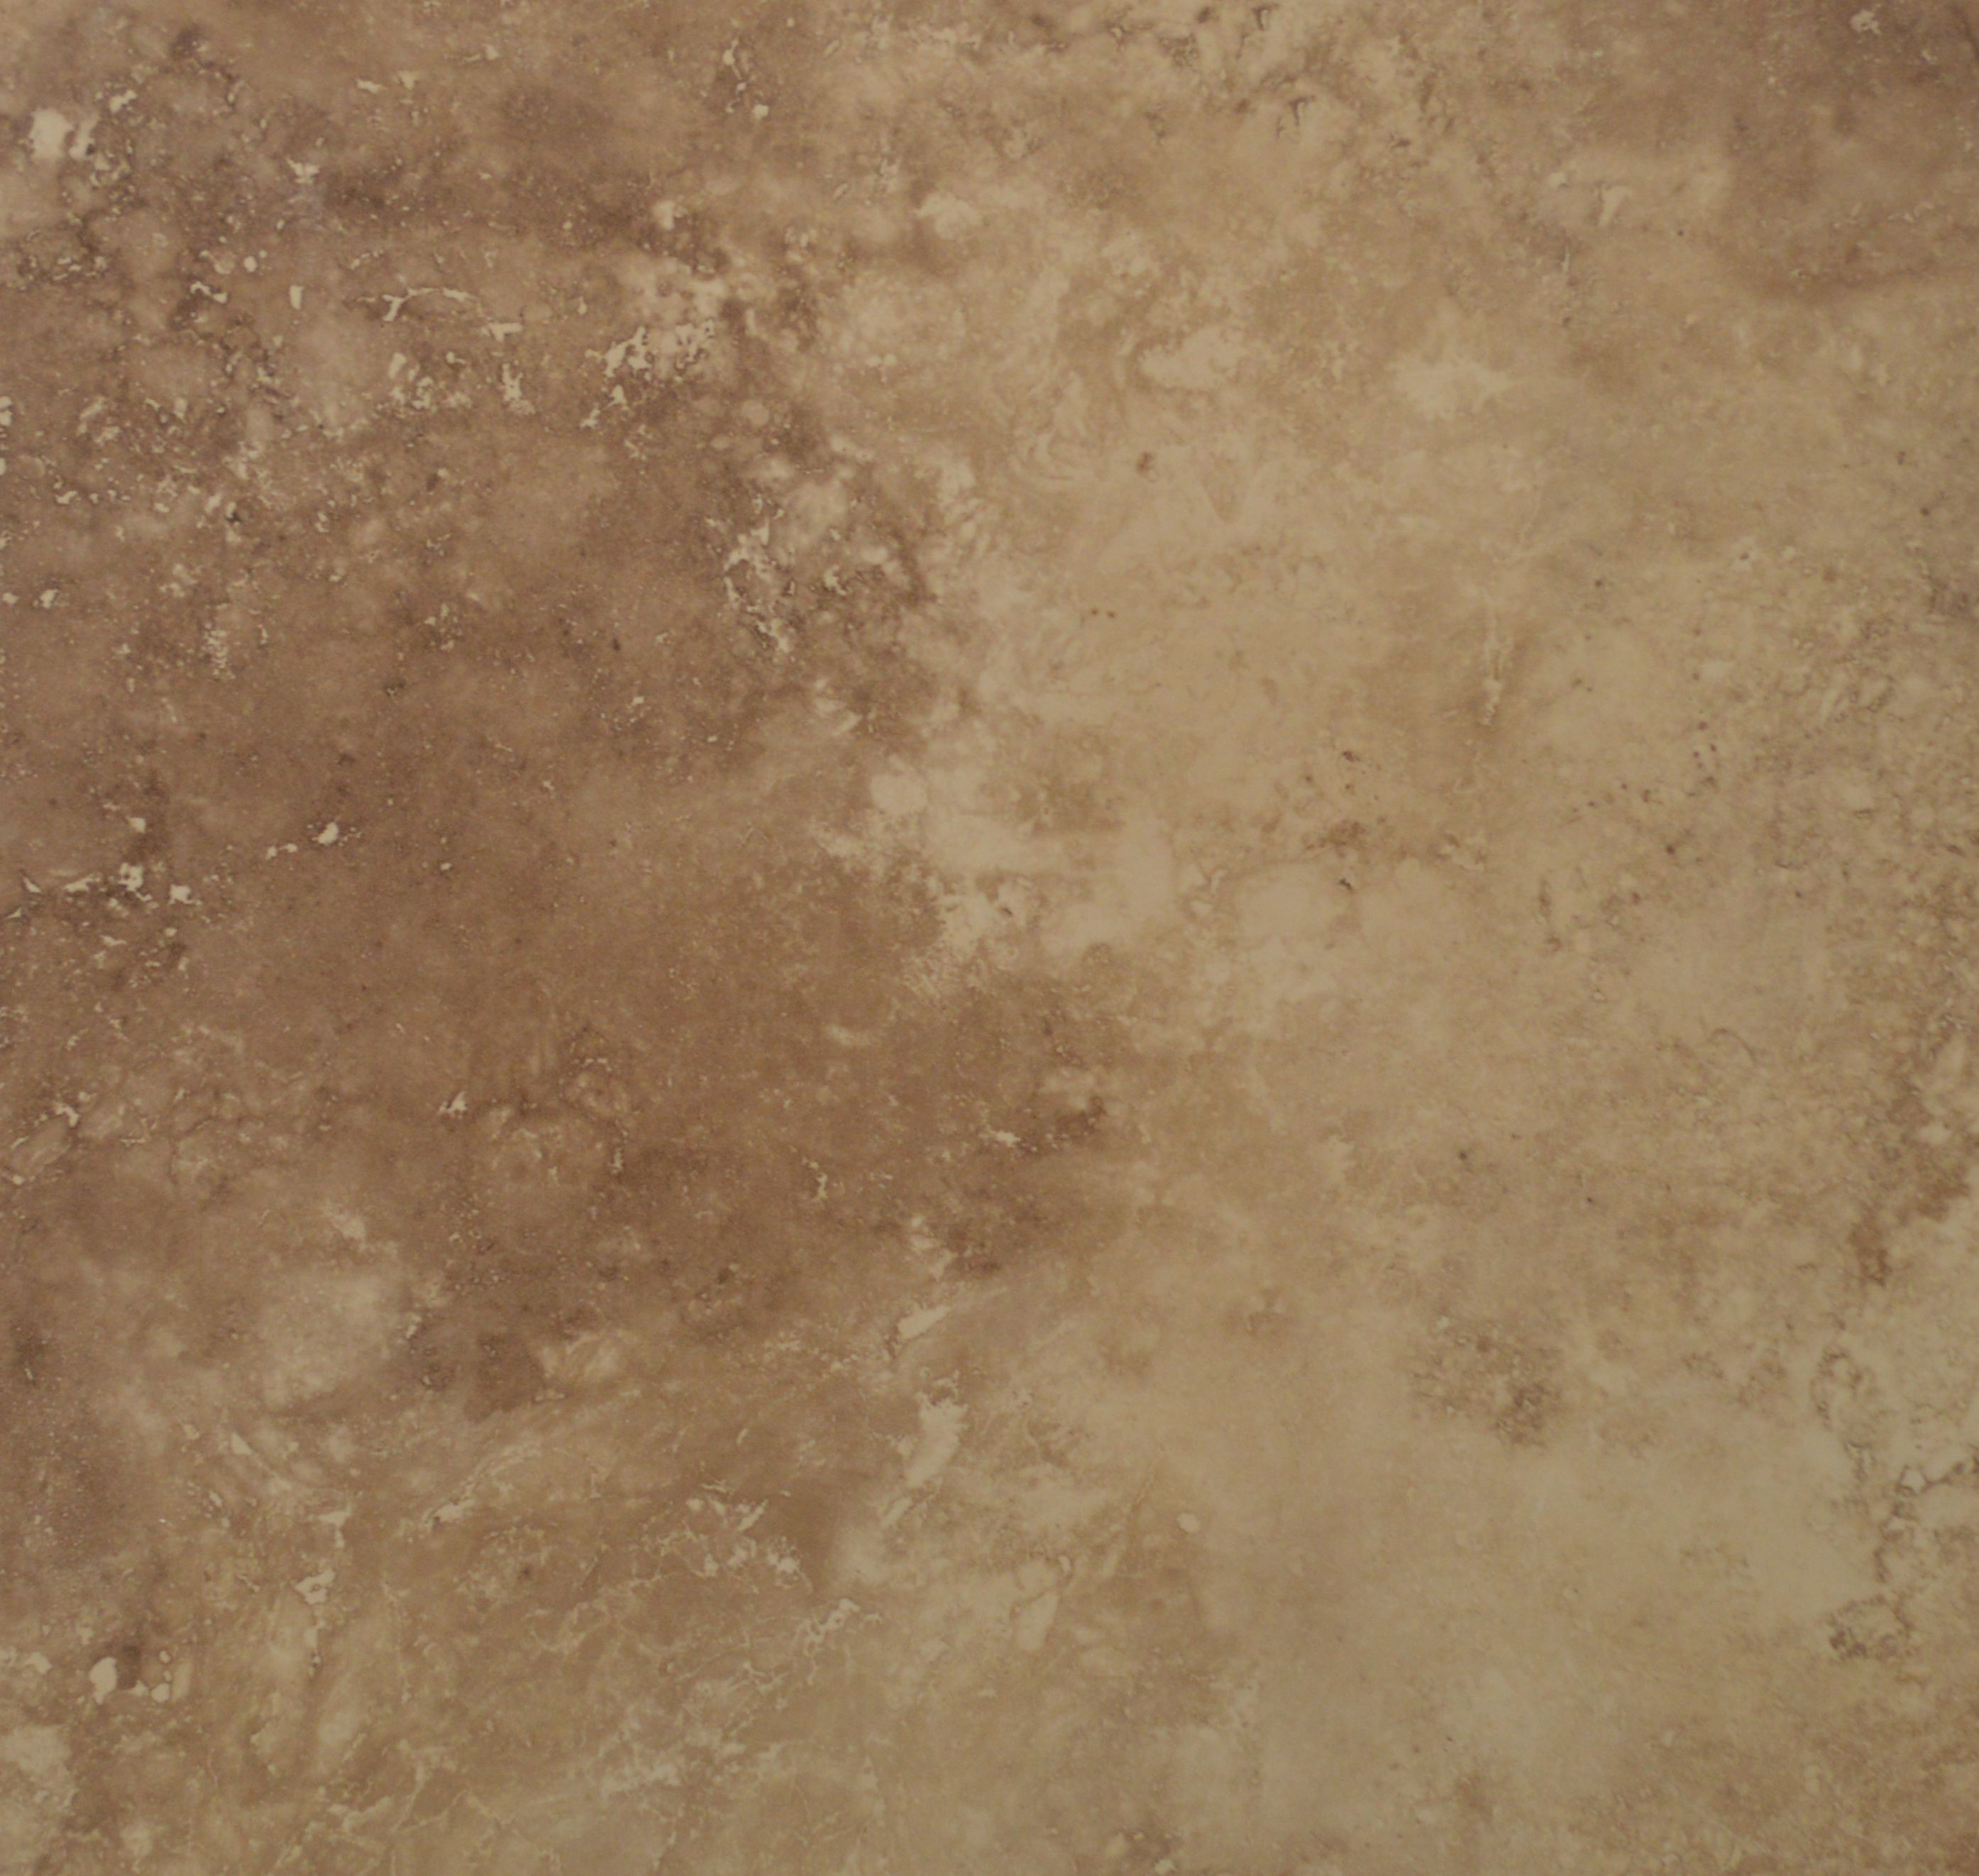 Millstone - Brown Pearl 3x13 OR 13x13 OR 6x6 - Level 3 | Bath Tile ...